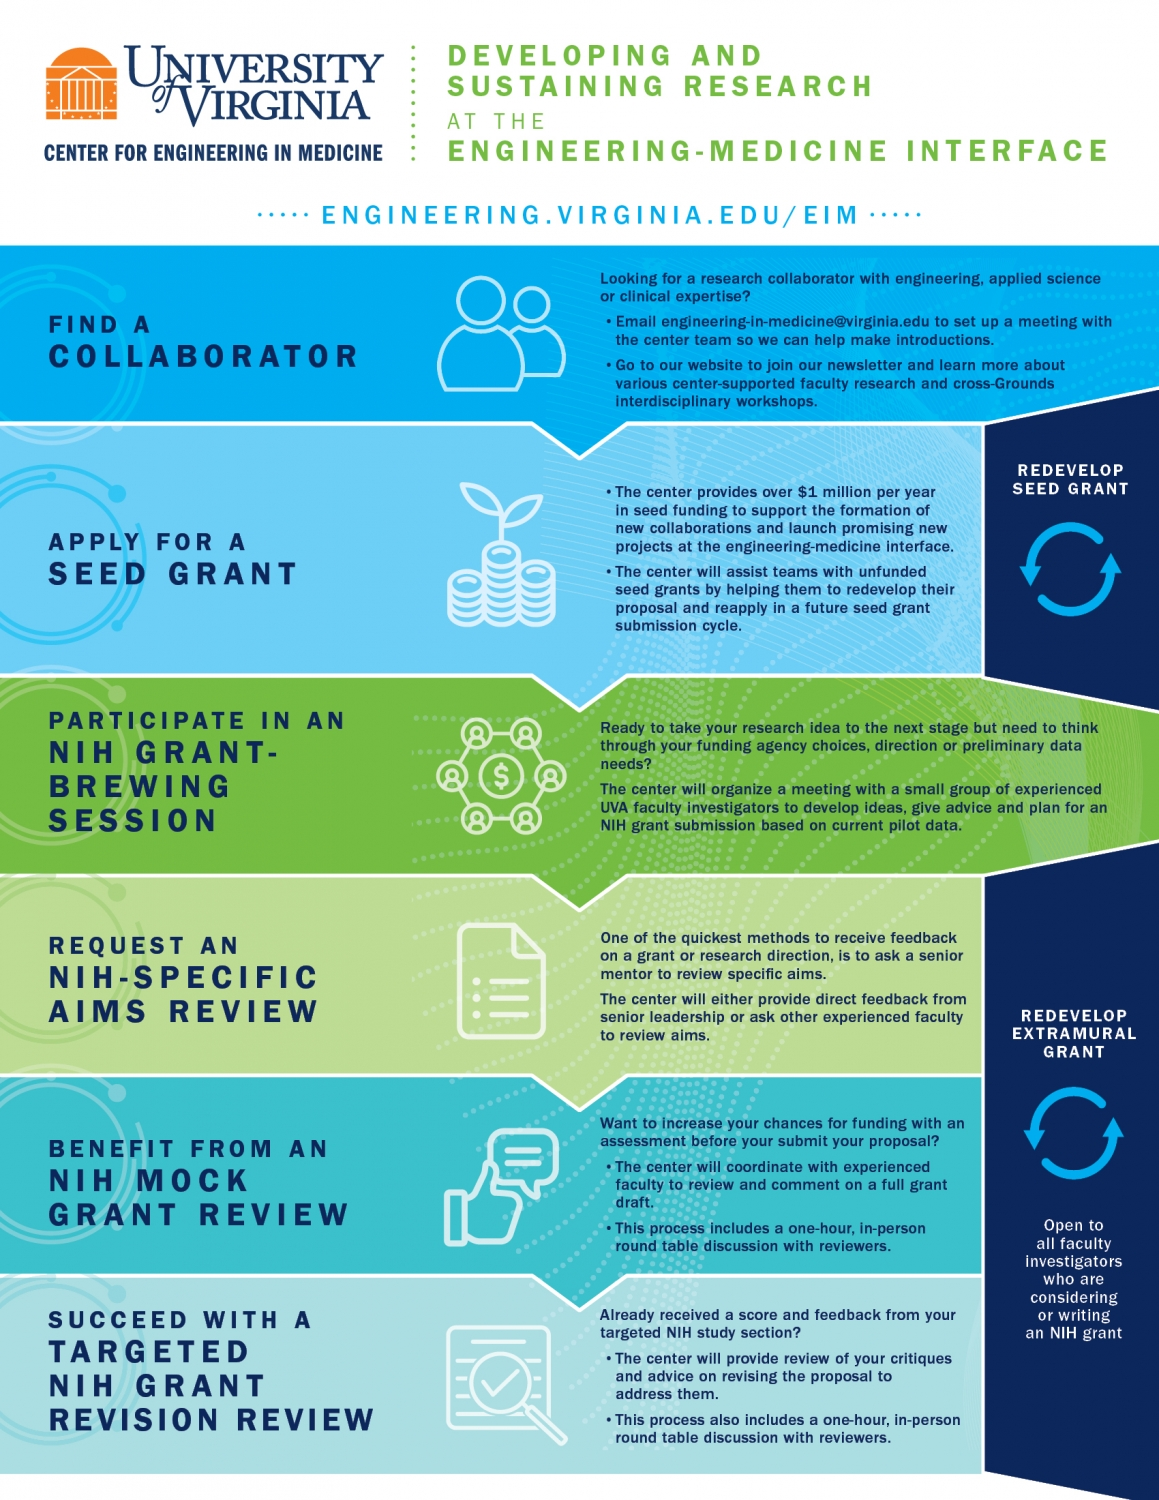 UVAEng_EIM_Infographic_ResearchDevelopment vertical FINAL.jpg